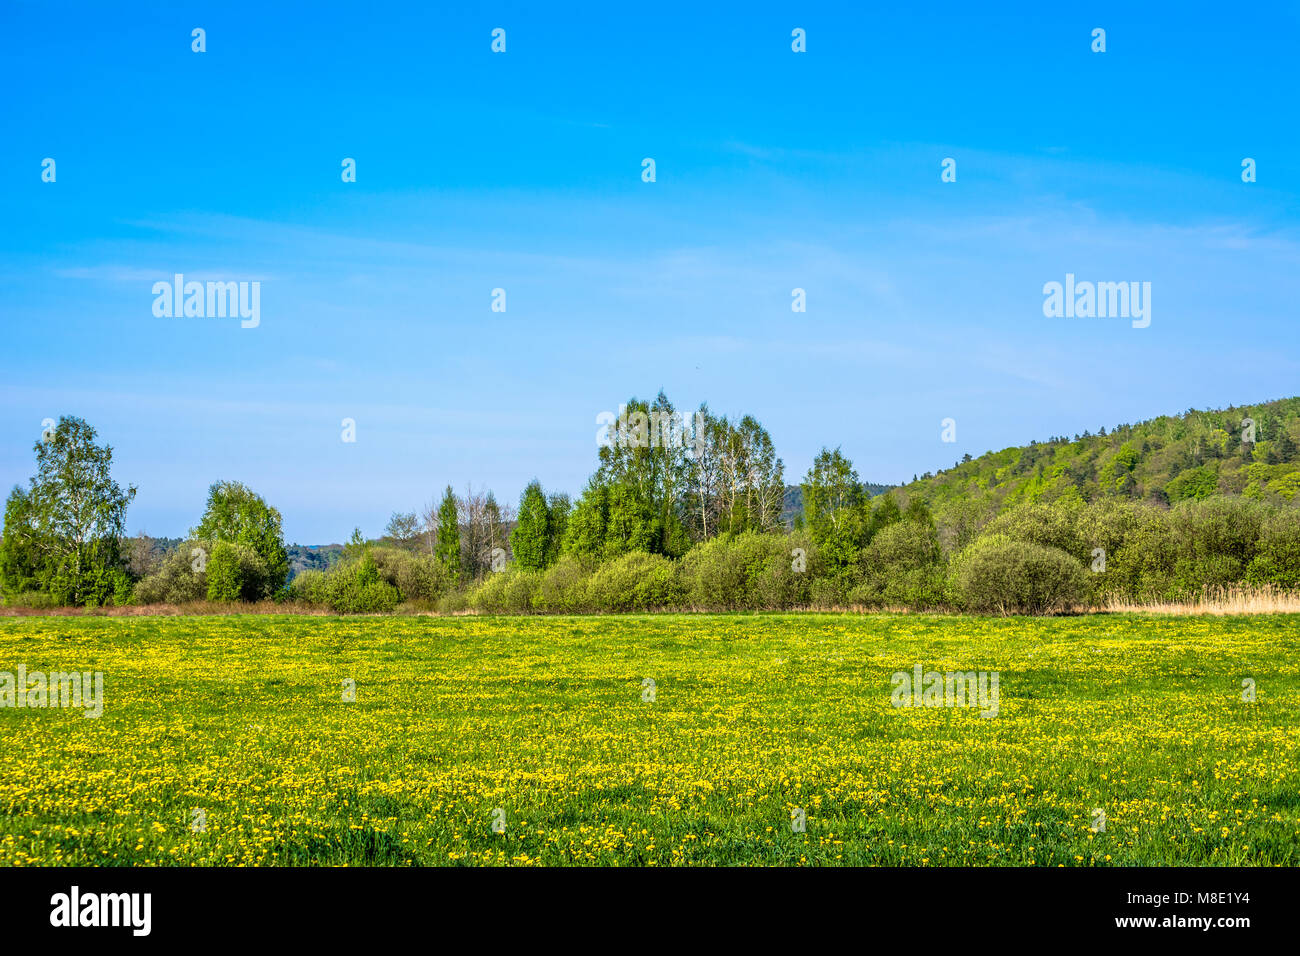 Green spring landscape with field of dandelion, flowers on meadow with lush grass and blue sky - Stock Image